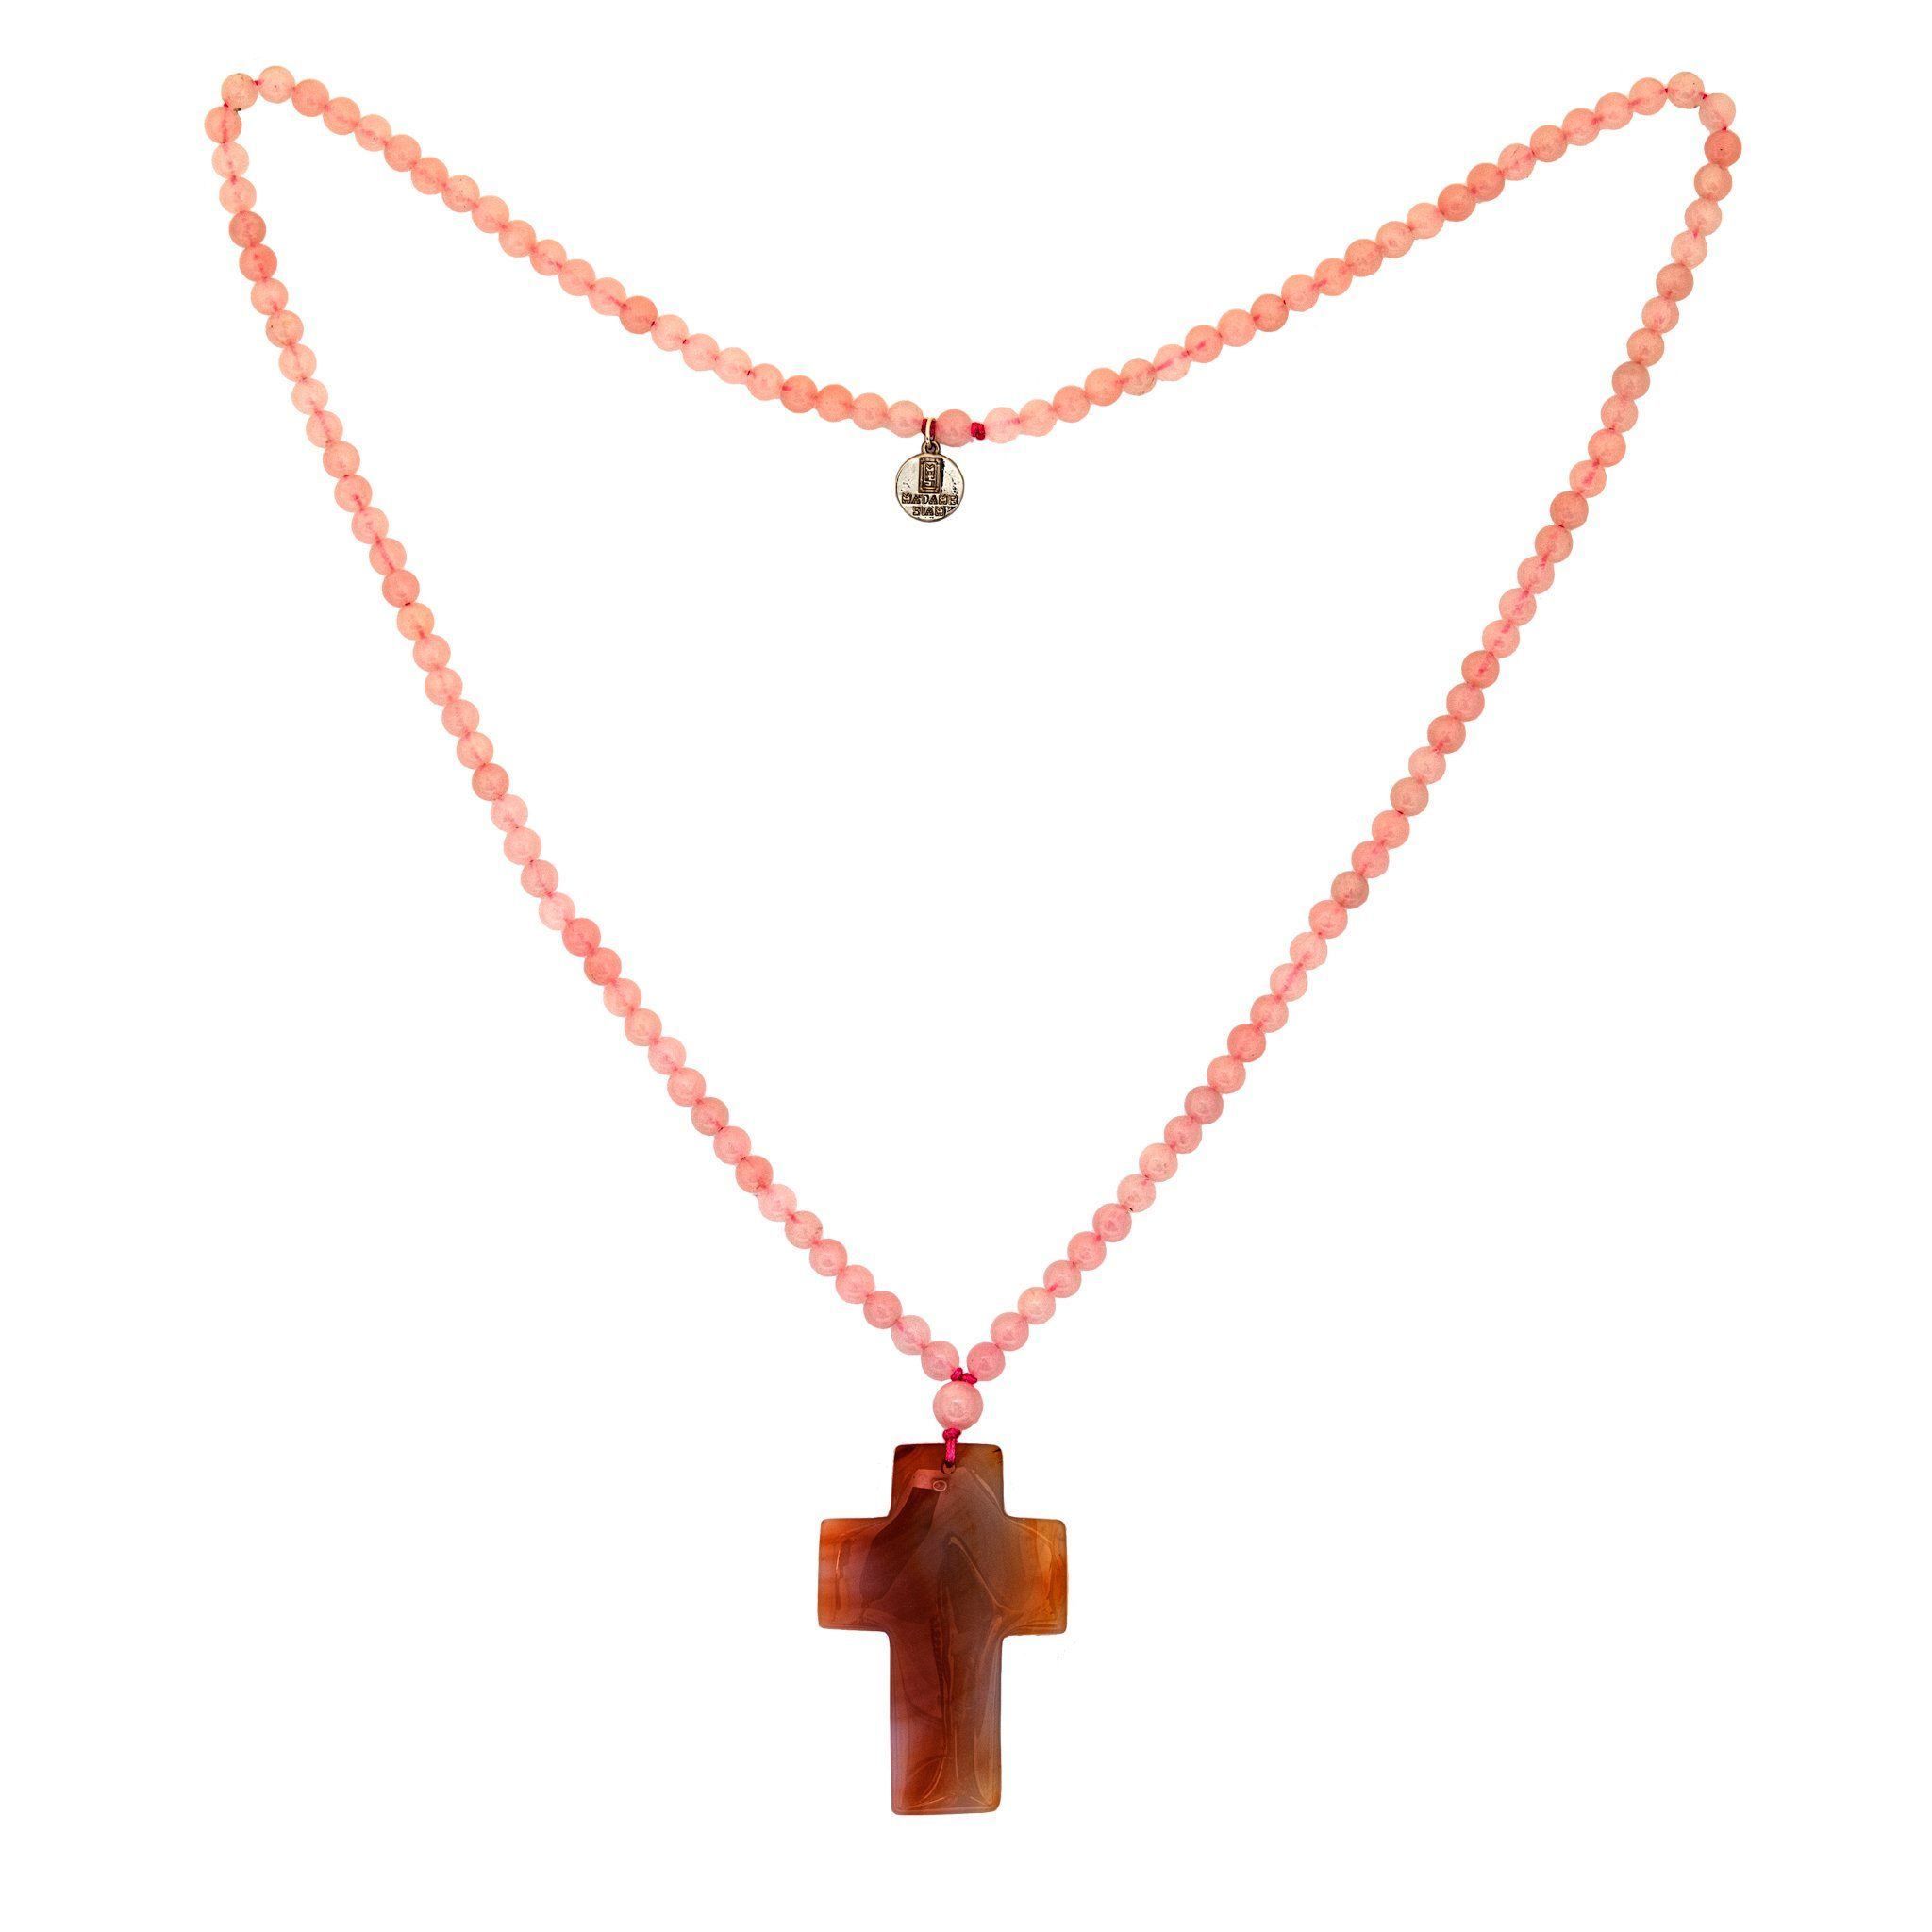 BAHIA rose quartz cross necklace - MadamSiam